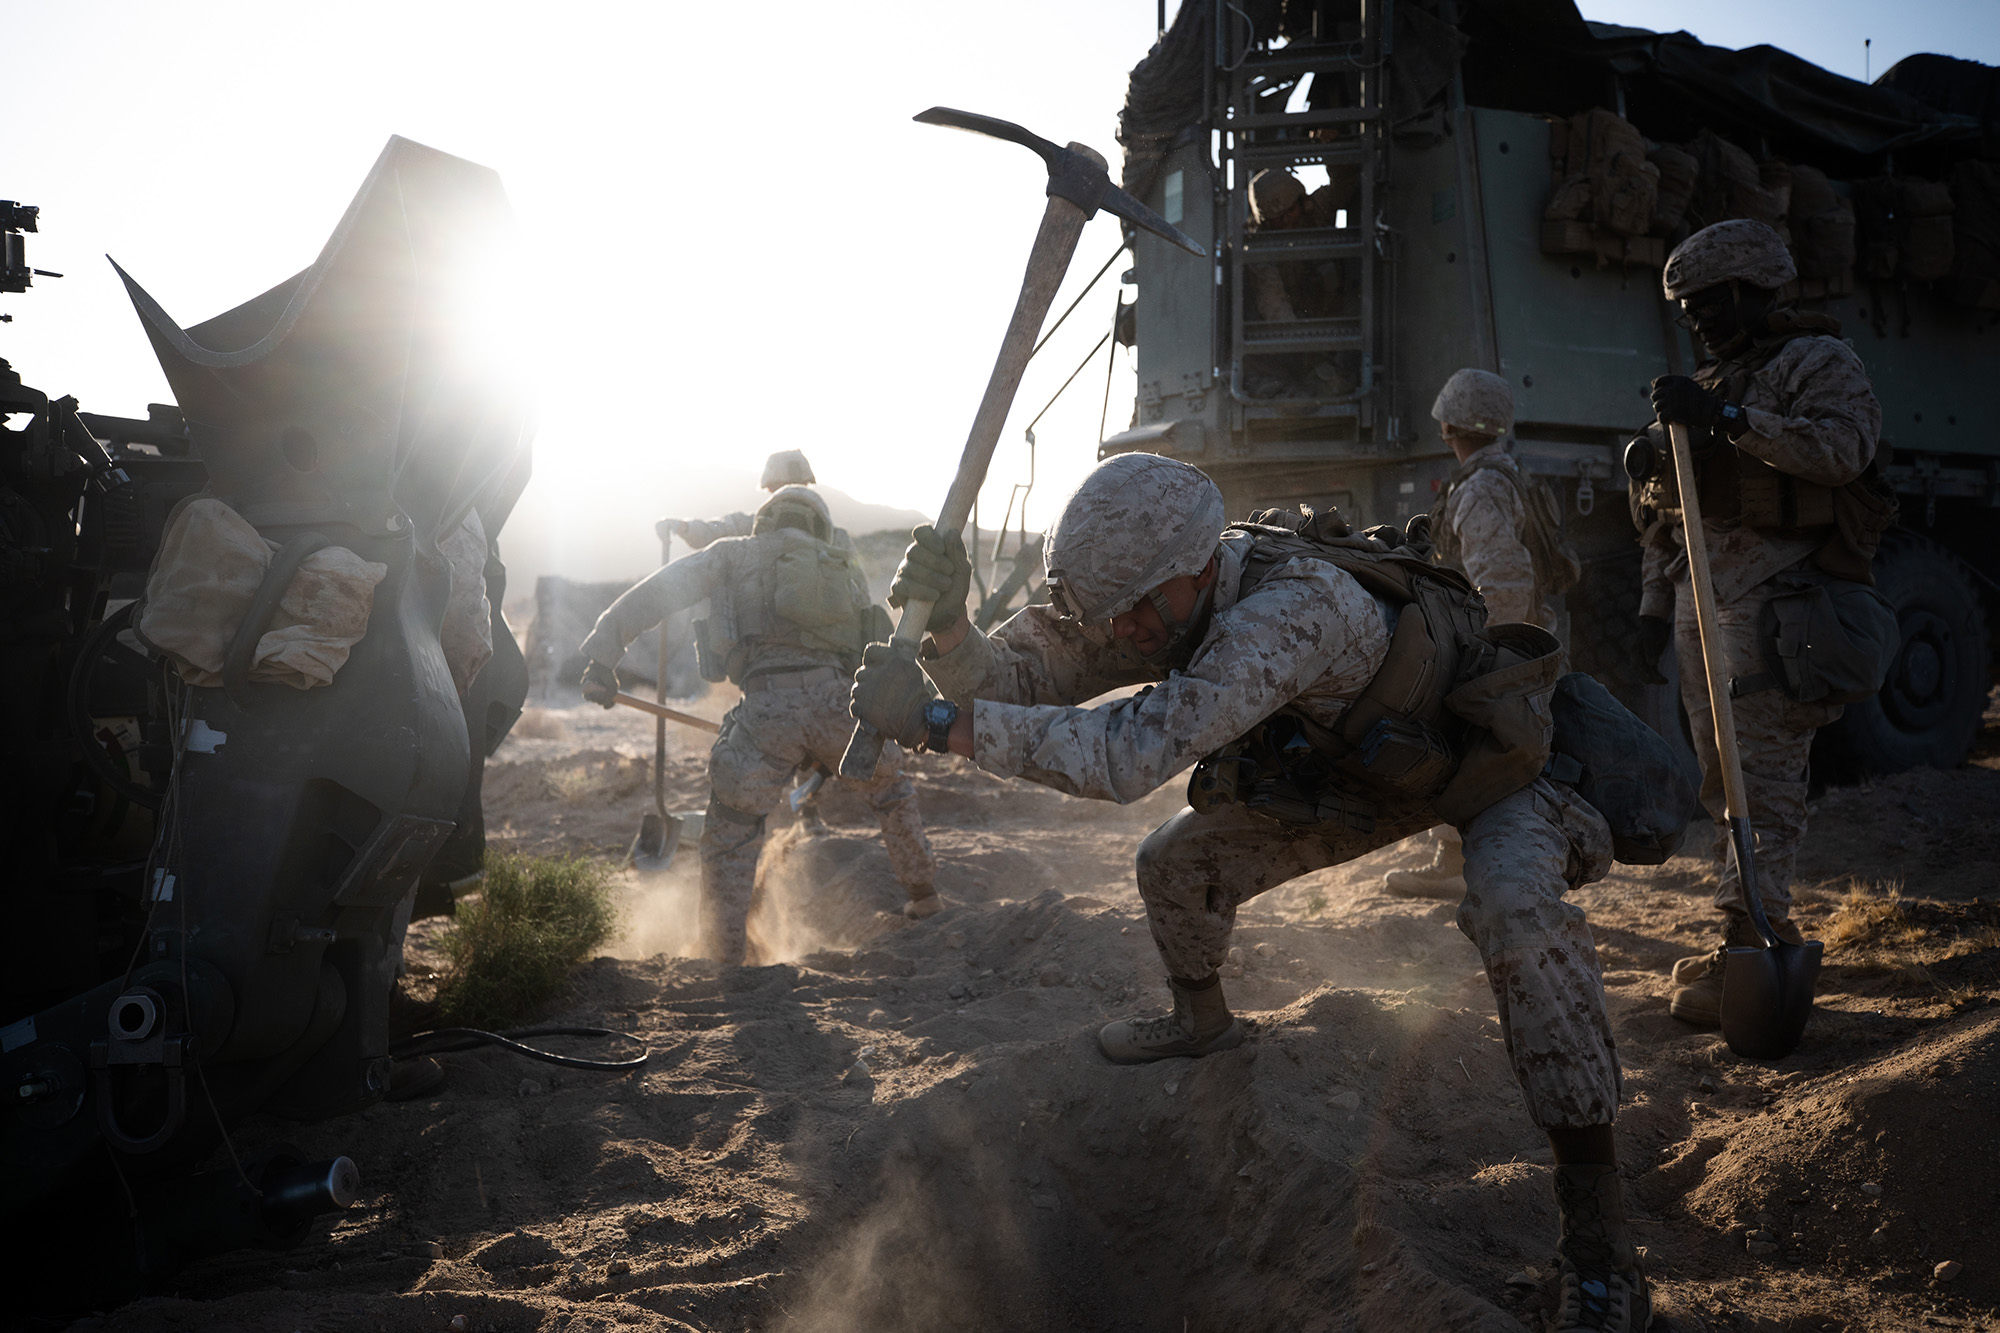 Marine Corps Pfc. Aristeo Morales digs an entrenchment for an M777 towed 155 mm howitzer during a live-fire defense simulation at the Marine Corps Air Ground Combat Center in Twentynine Palms, Calif., March 30, 2021. (Cpl. Jamin M. Powell/Marine Corps)